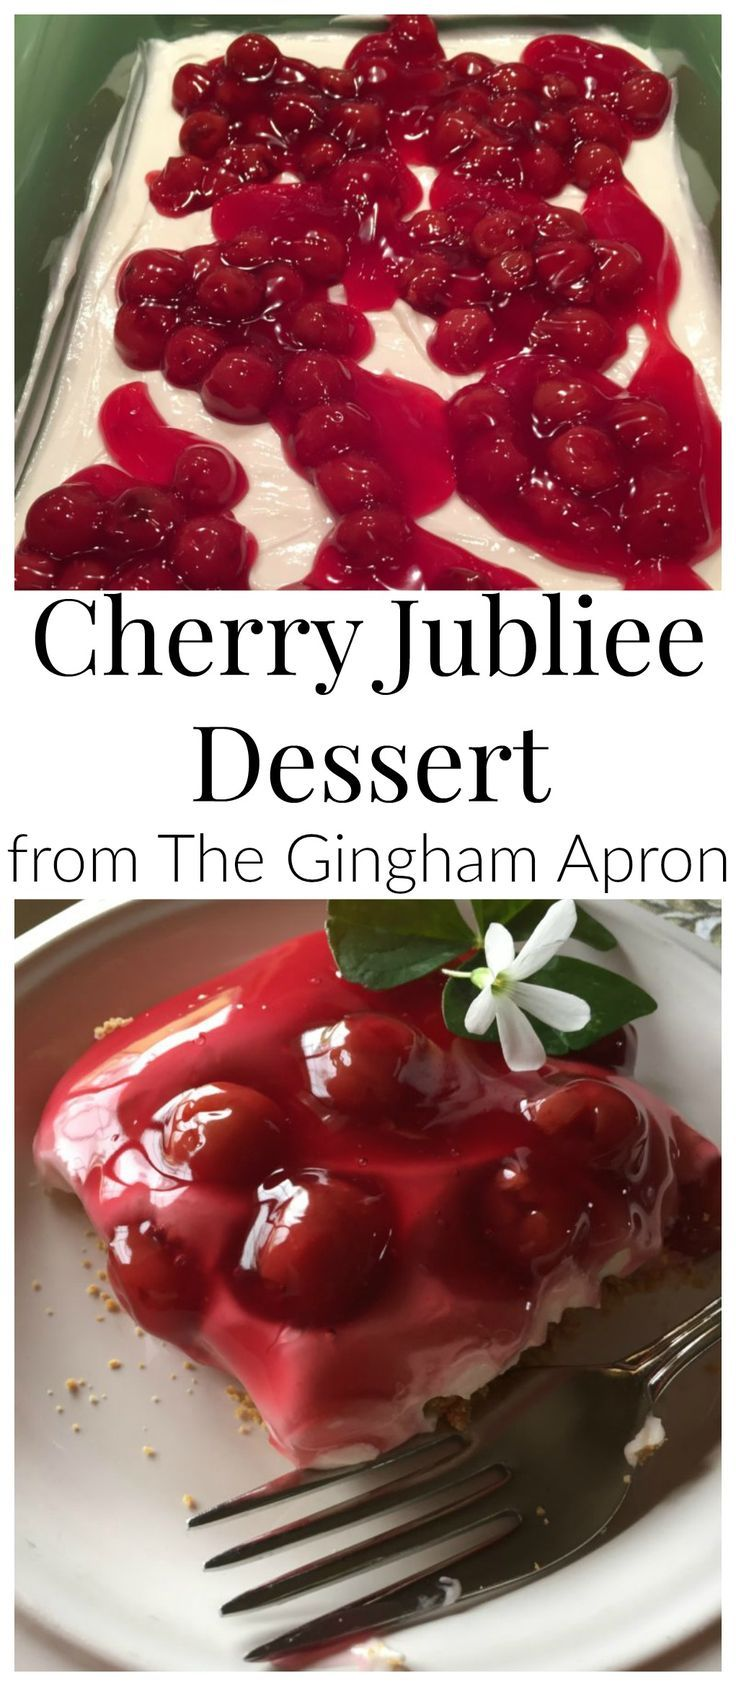 Cherry Jubilee Dessert- a scrumptious, easy to make dessert that your family will love. Tastes like cheesecake, but easier to make! #holiday #thanksgiving #christmas